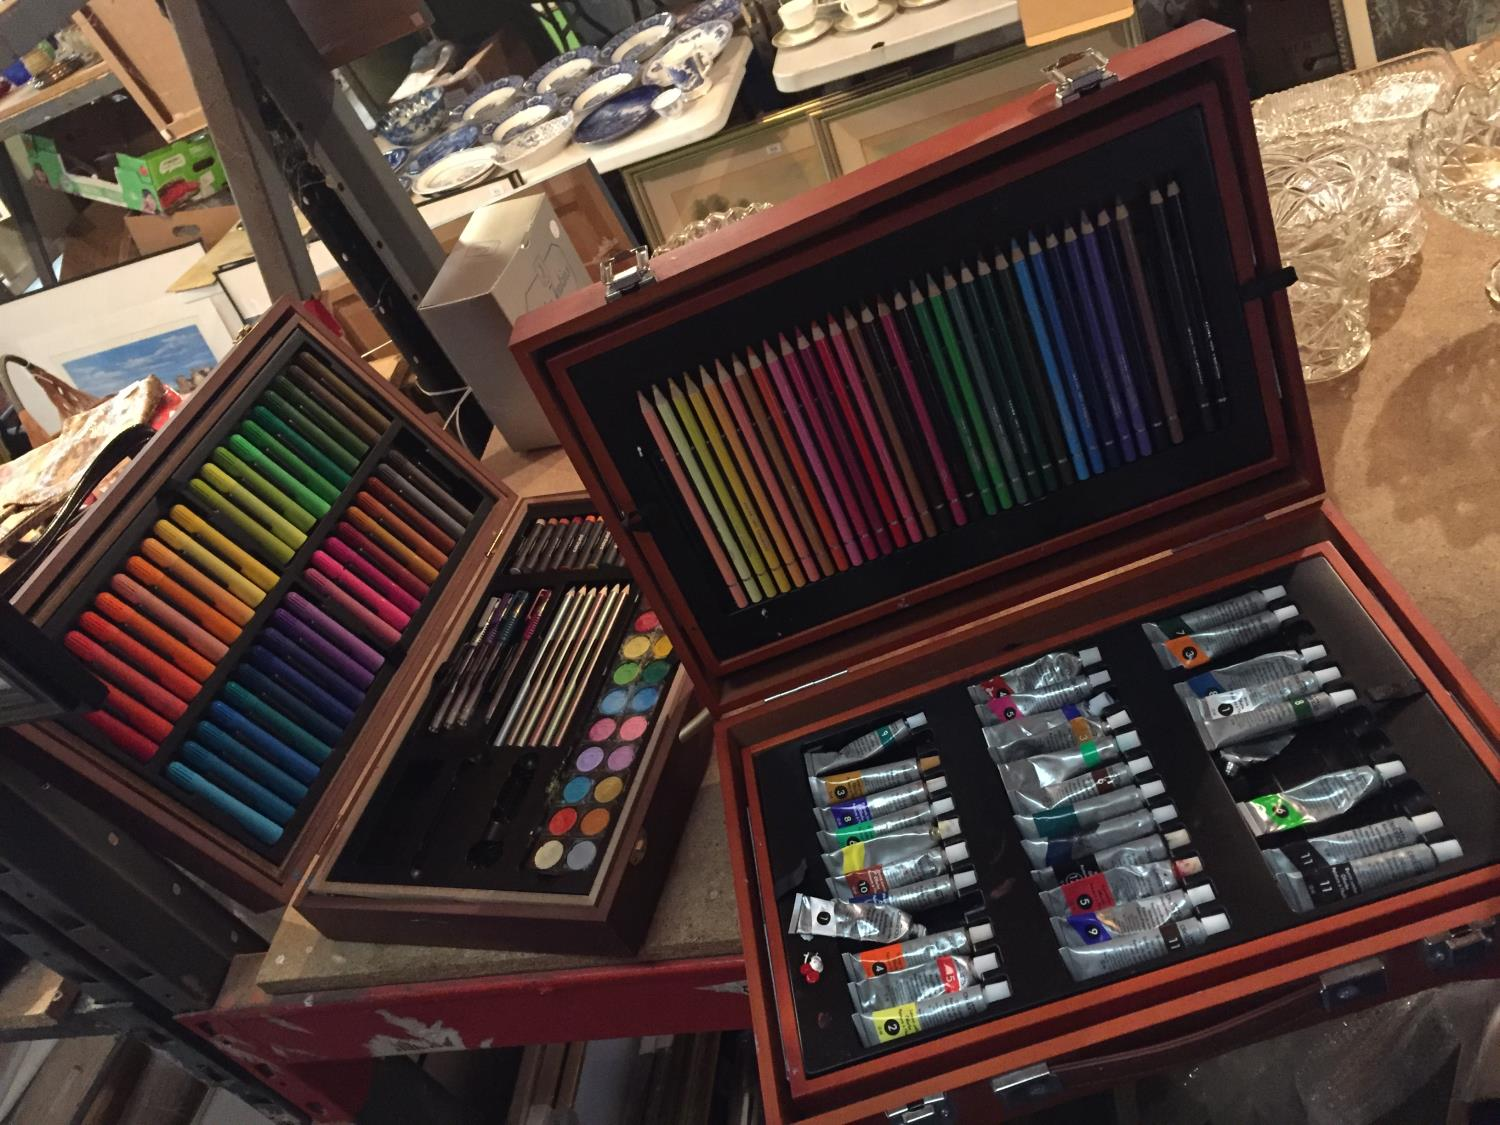 TWO CASES OF ART SUPPLIES TO INCLUDE FELT TIPS, PENCILS, OIL PAINTS ETC - Image 2 of 12